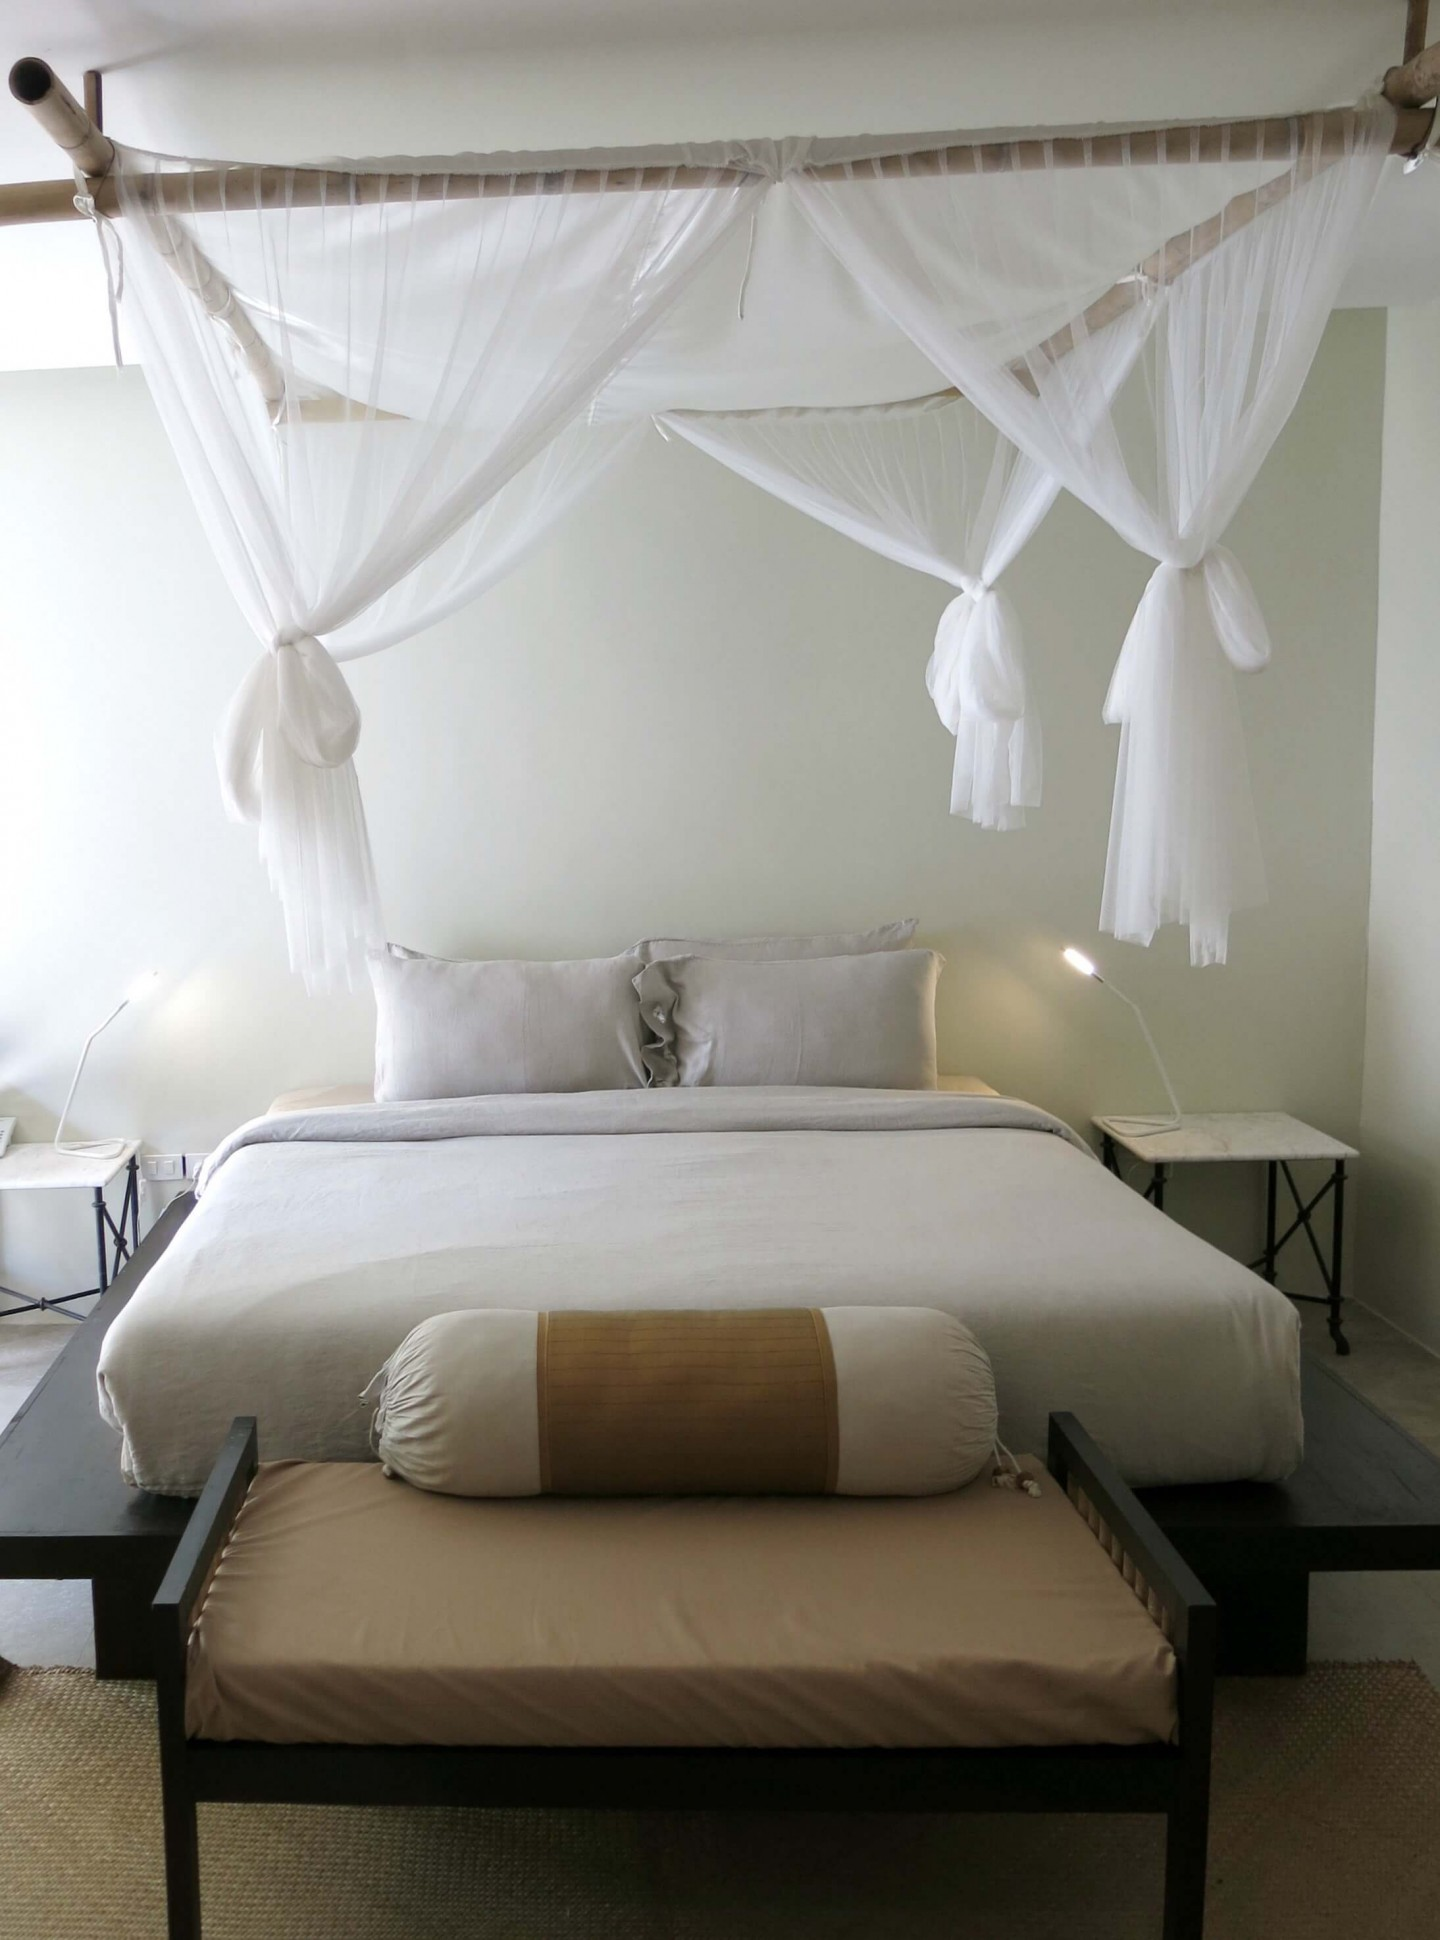 The minimalist rooms at the Sri Lanta Resort on Koh Lanta.